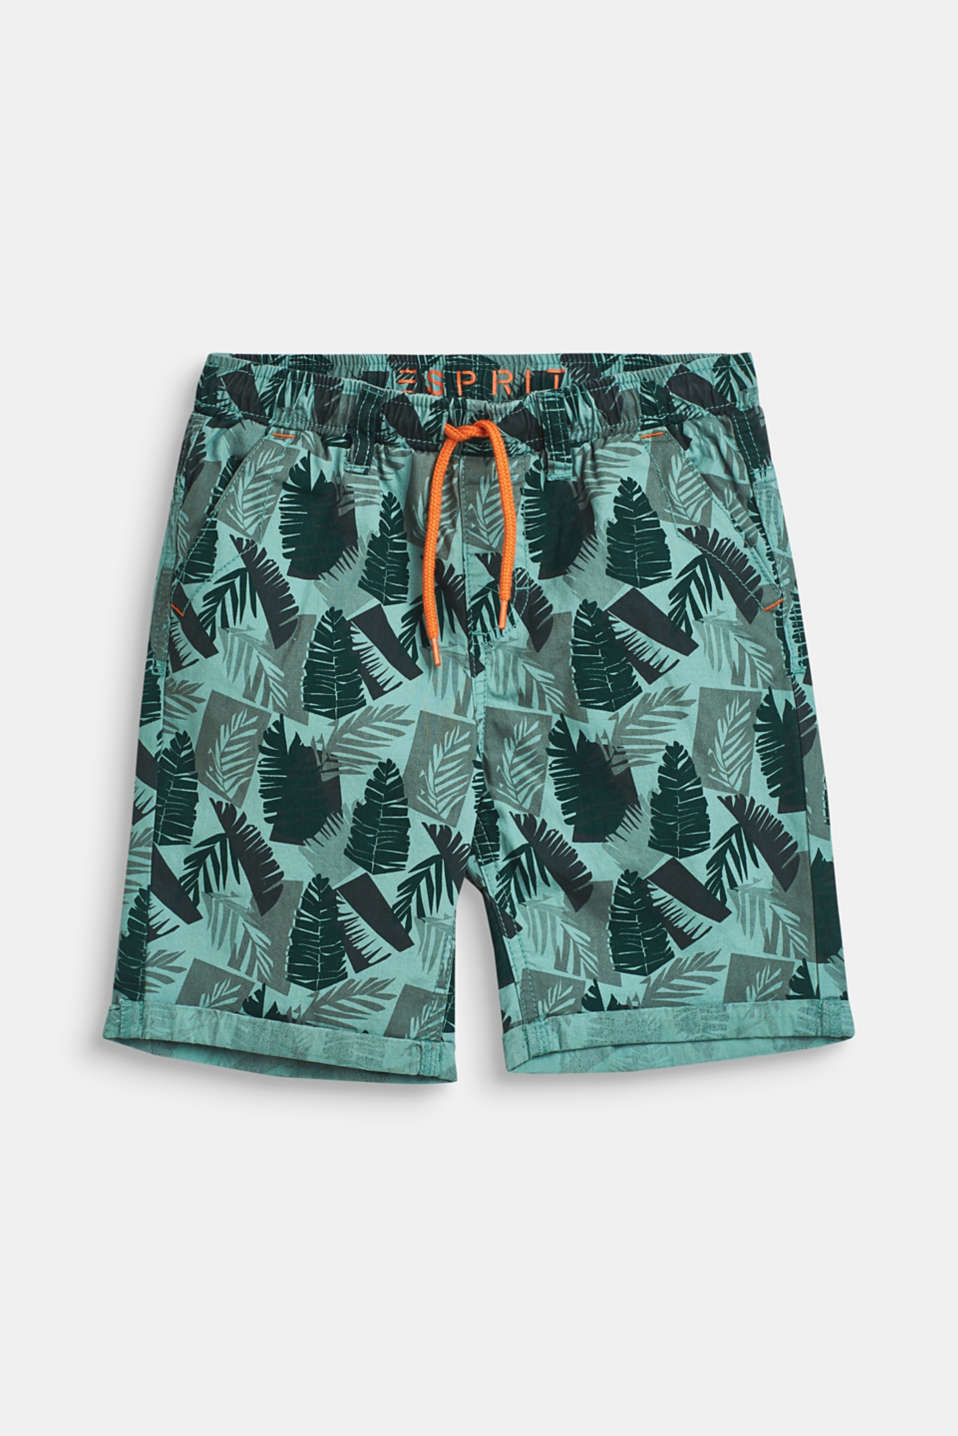 Esprit - Shorts with tropical print, 100% cotton